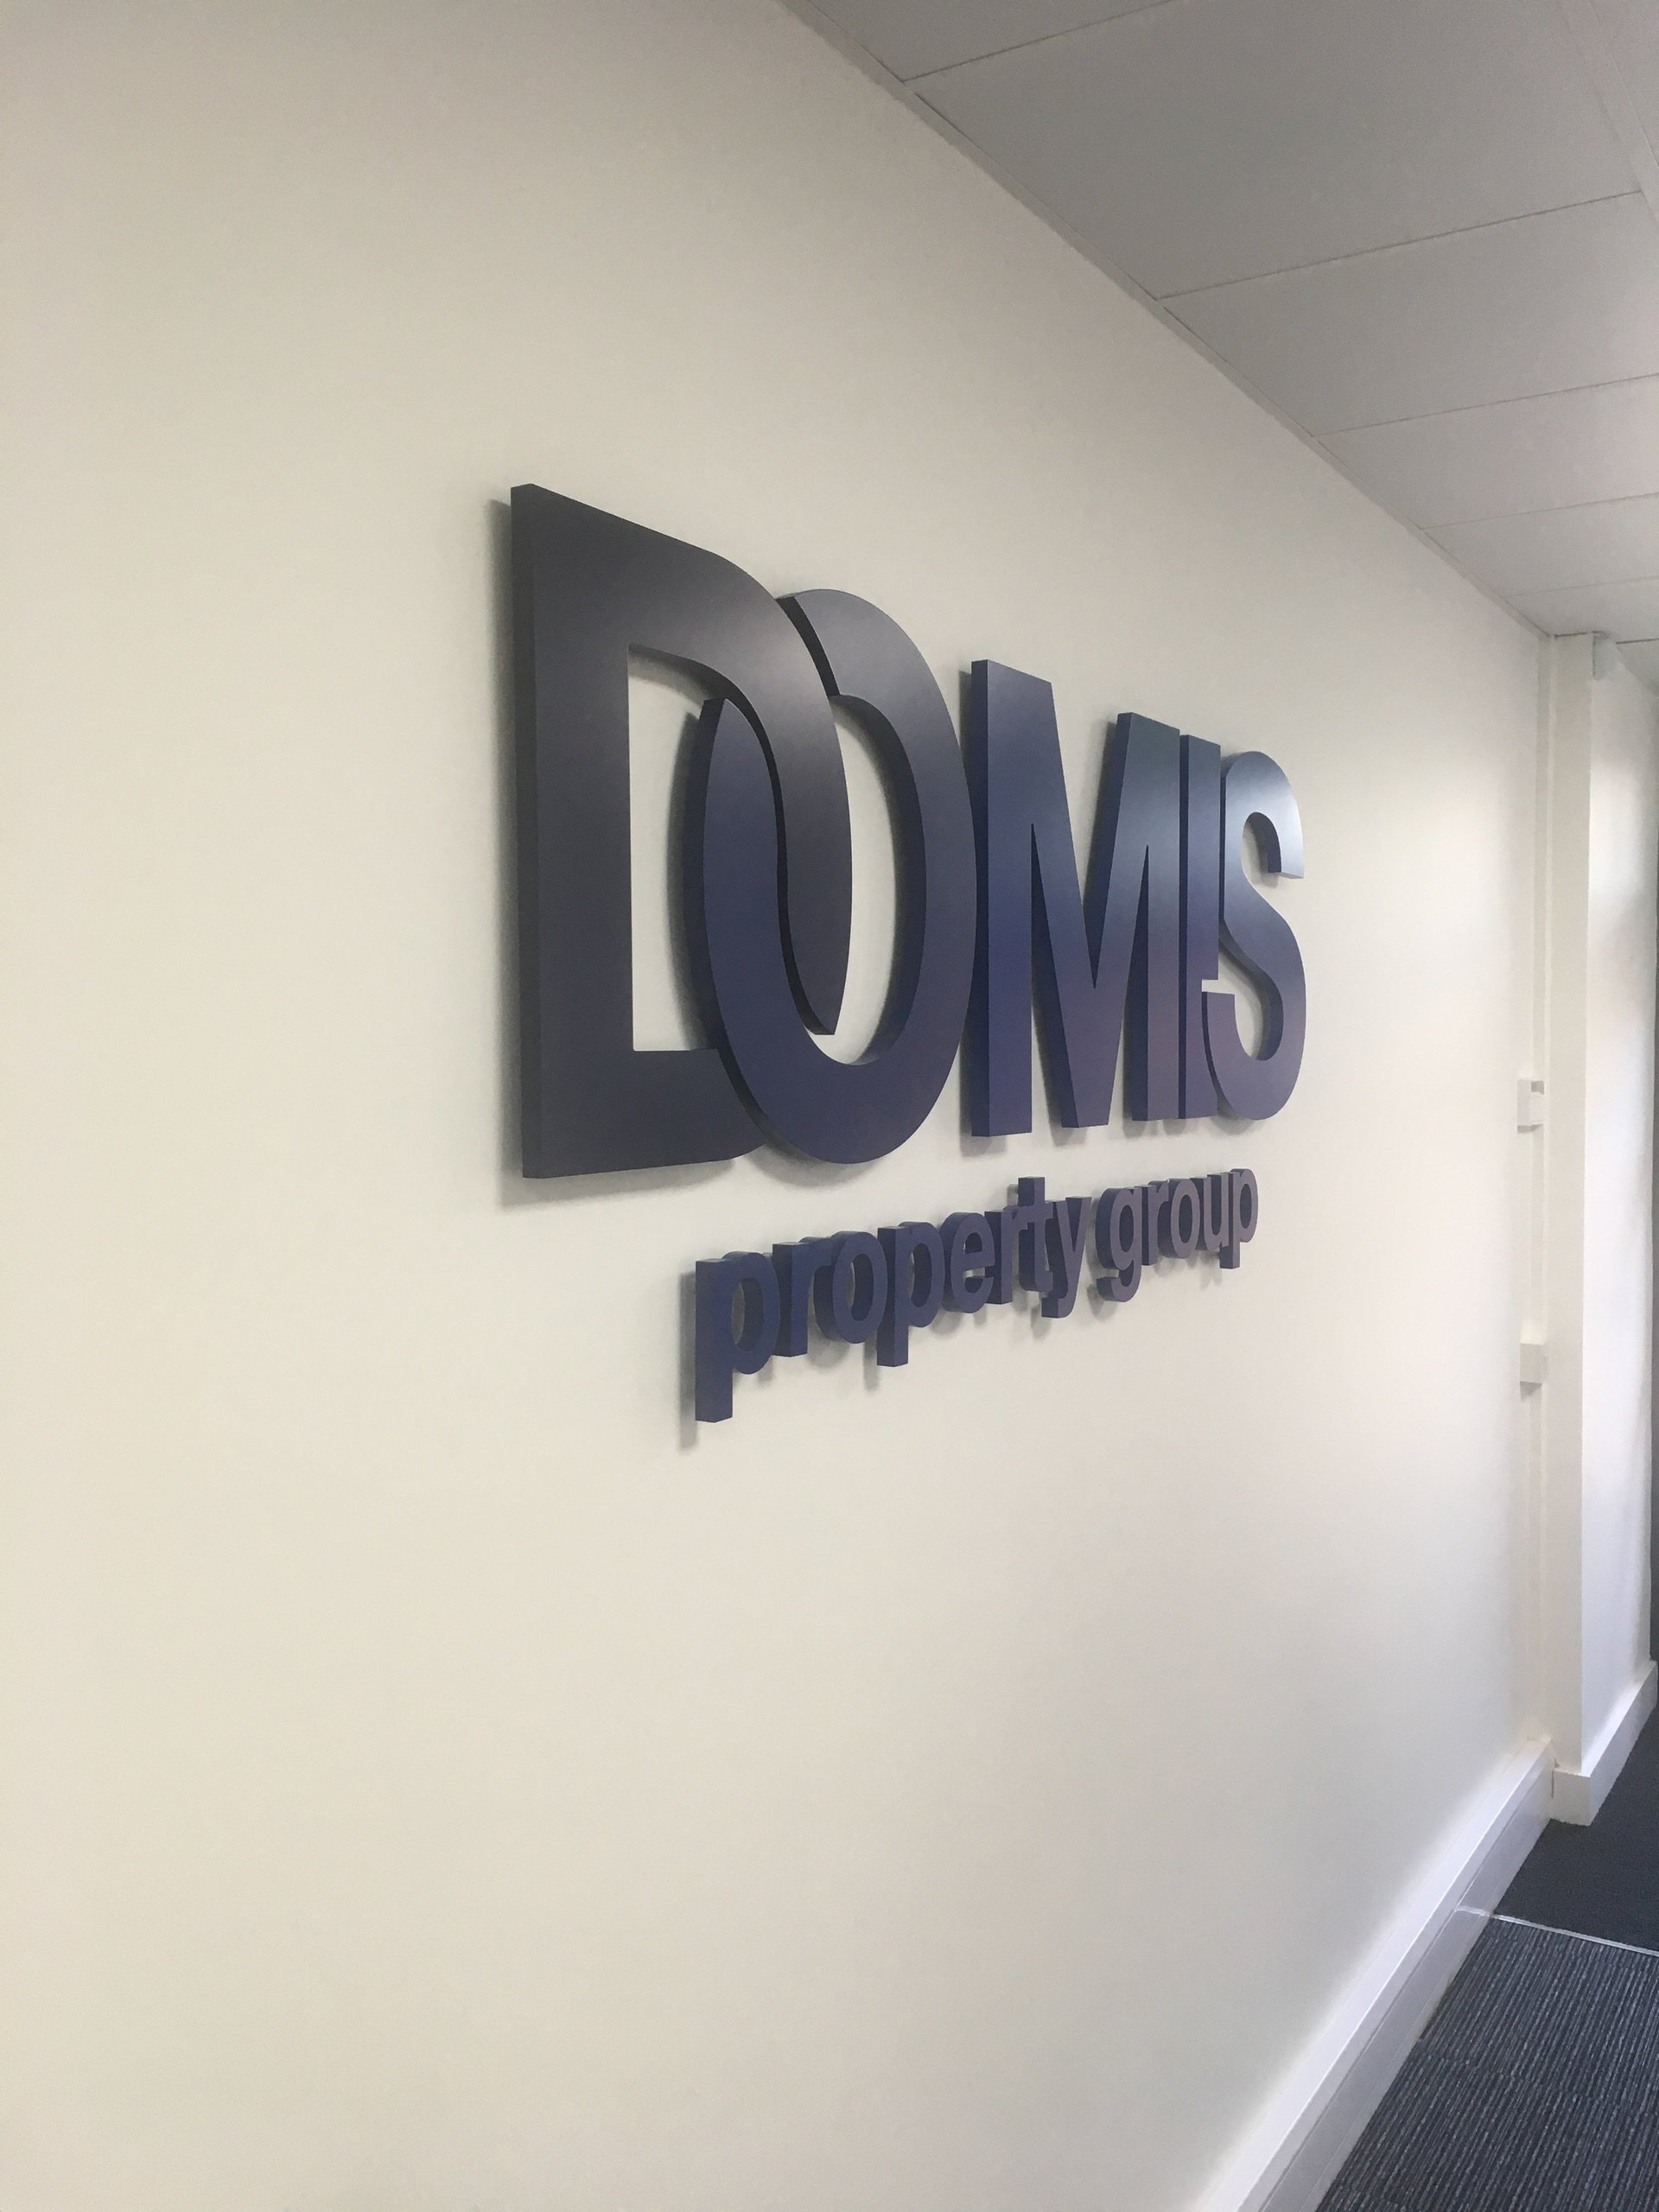 f19b670ae1 Elite Sign Solutions recently completed a fantastic project for the Domis  HQ in Warrington